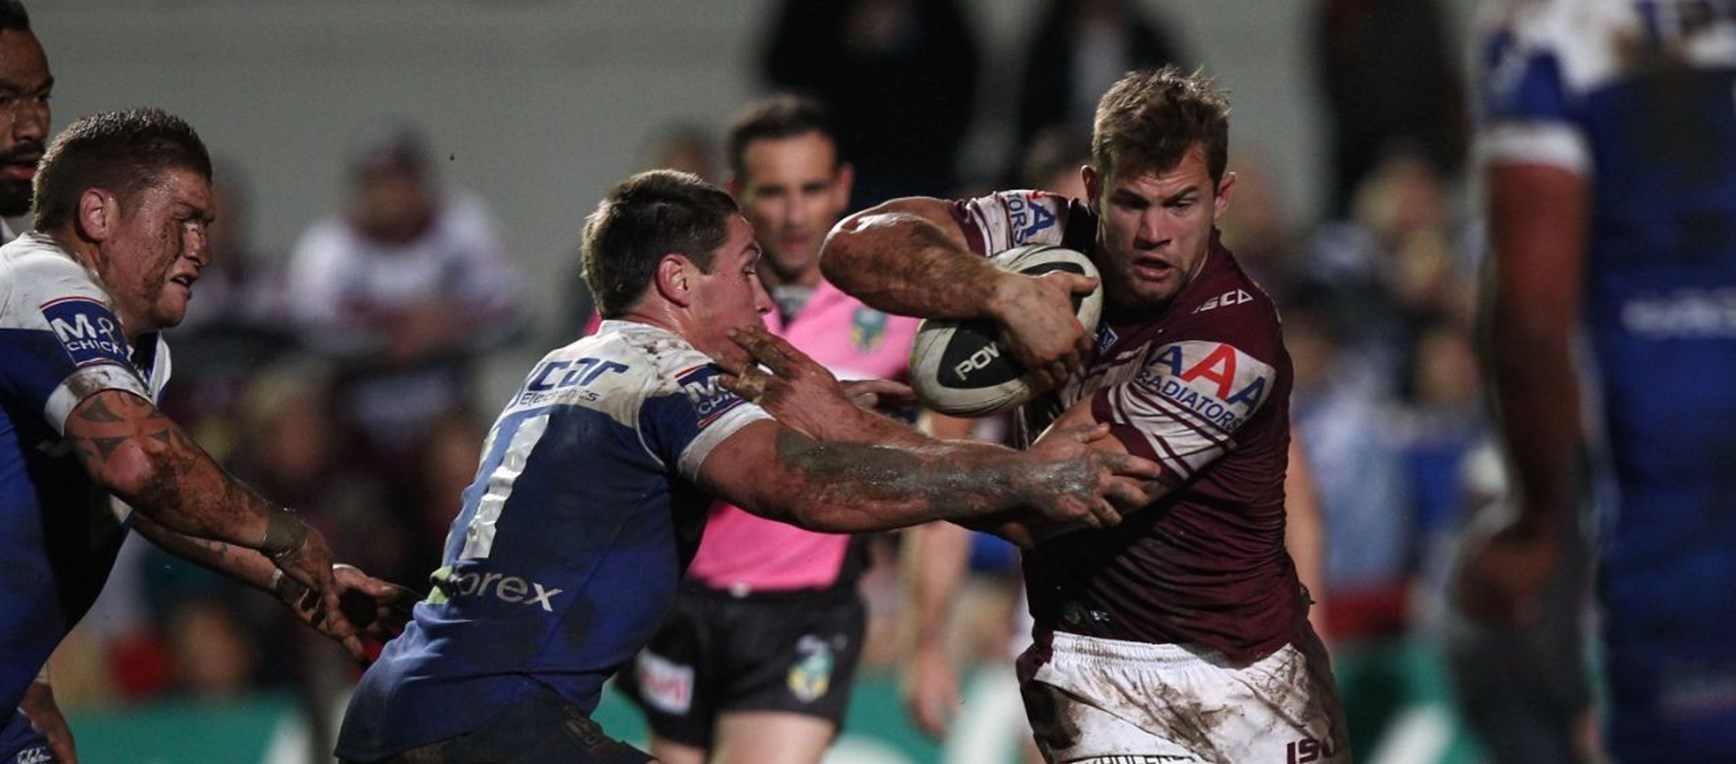 GALLERY: Rnd 13 vs Bulldogs